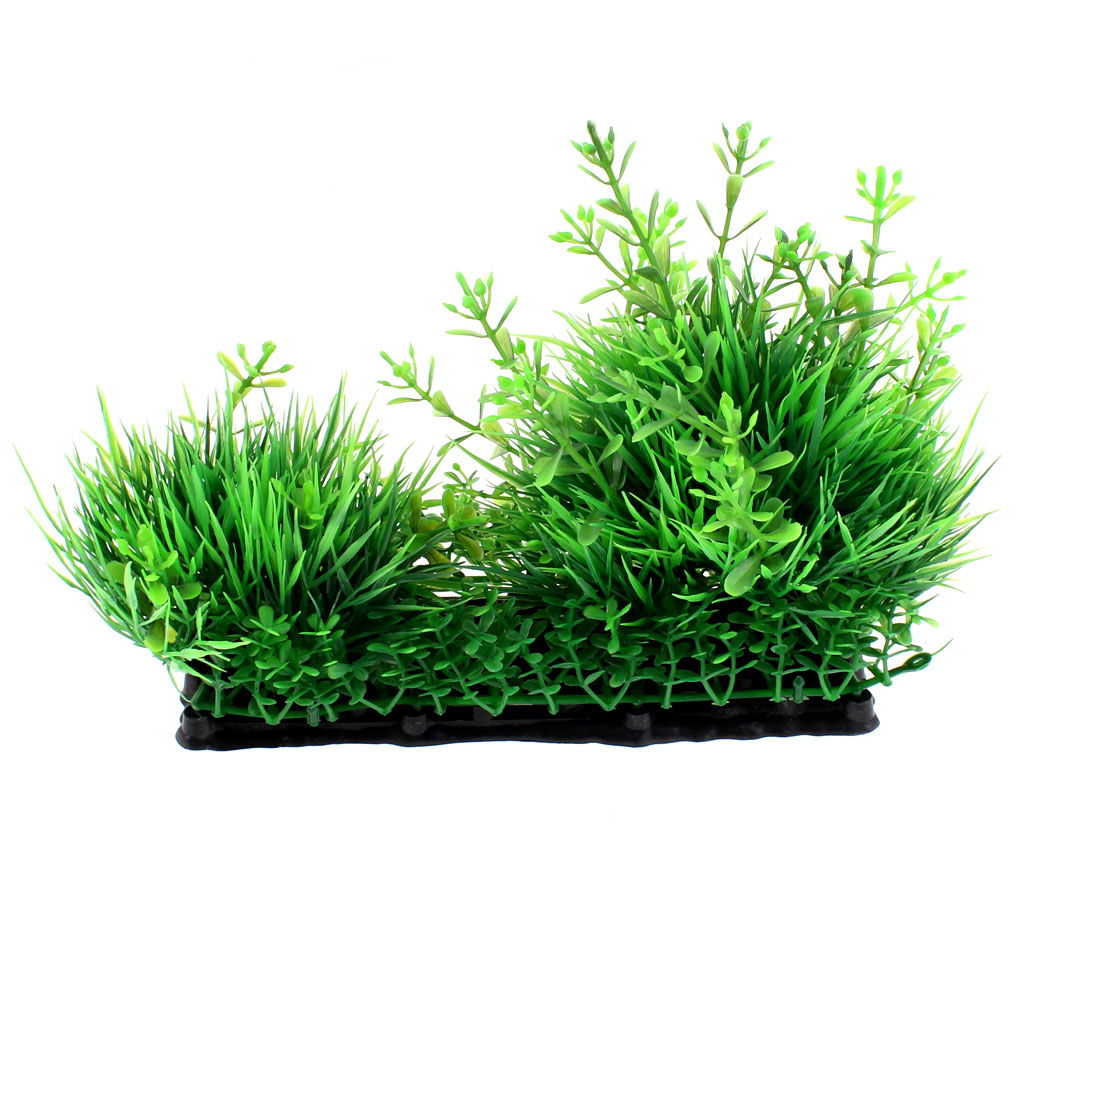 Plastic Manmade Underwater Plant Grass Decor 12 x 18cm for Aquarium Fish Tank